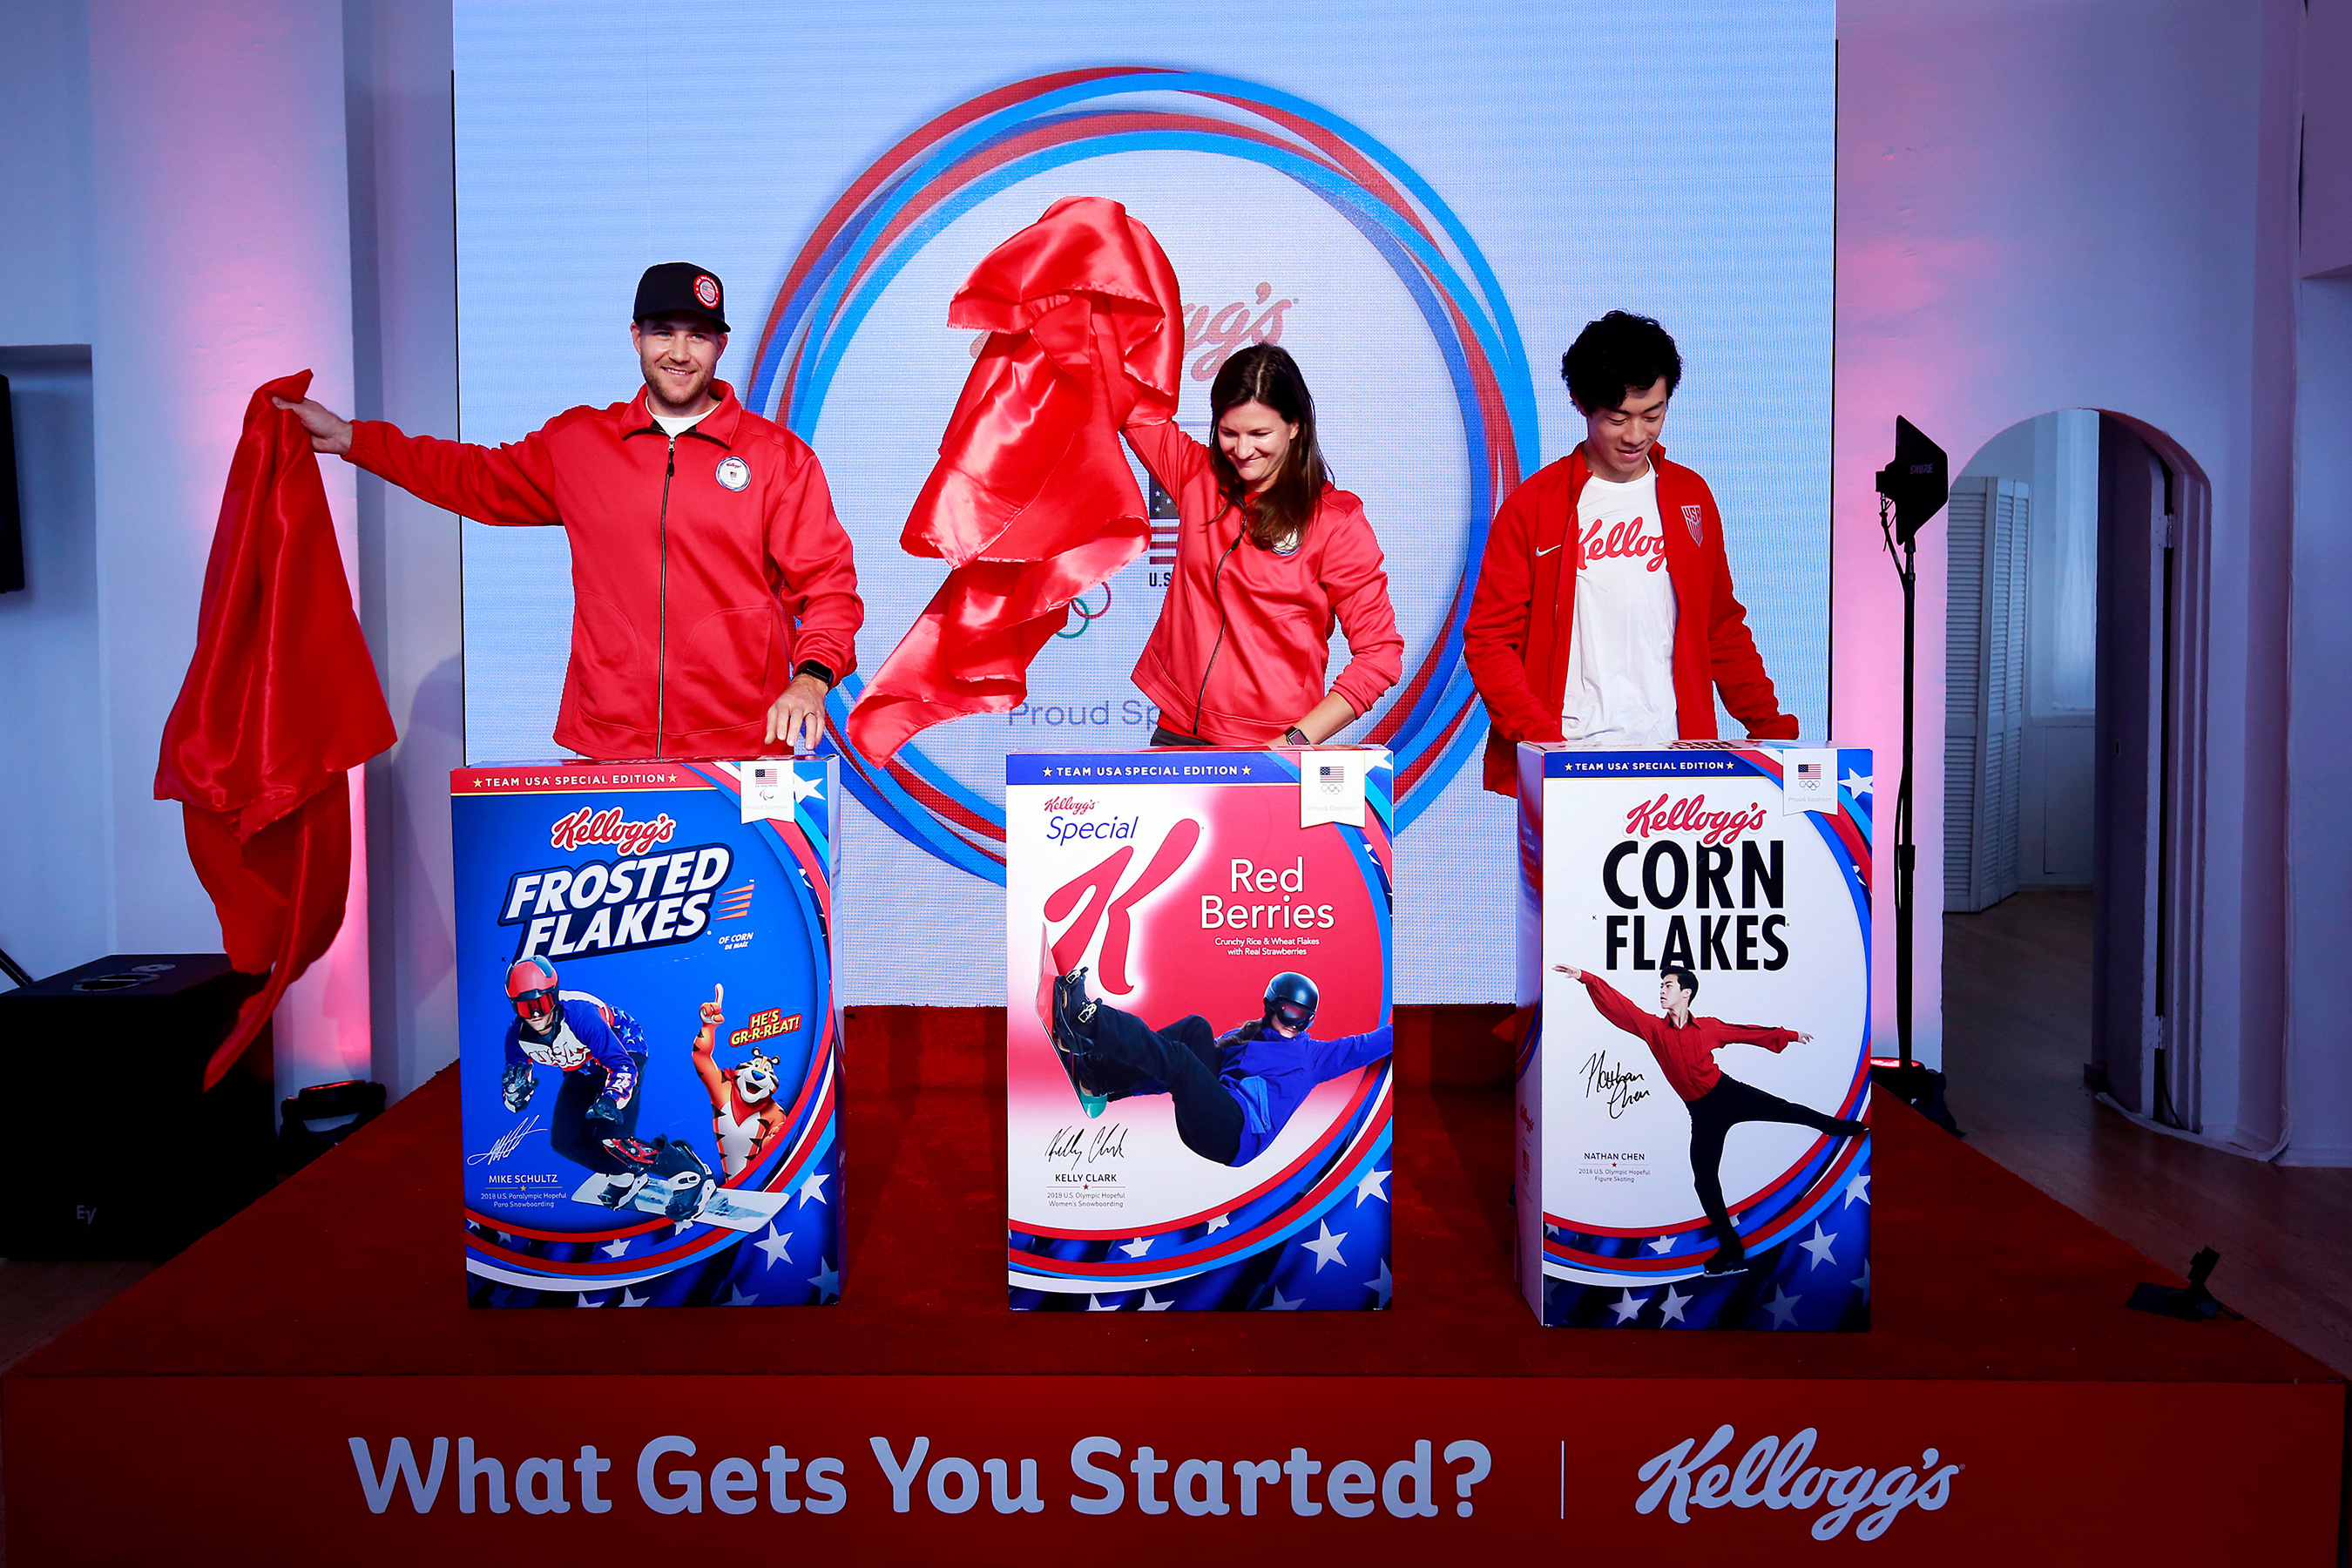 In celebration of the Olympic and Paralympic Winter Games 2018, Kellogg's unveiled limited-edition cereal boxes featuring Team USA hopefuls Mike Schultz, Paralympic snowboarding, from left, Kelly Clark, snowboarding, and Nathan Chen, figure skating. The athletes, along with Meghan Duggan, ice hockey (not pictured), were introduced as Team Kellogg's.